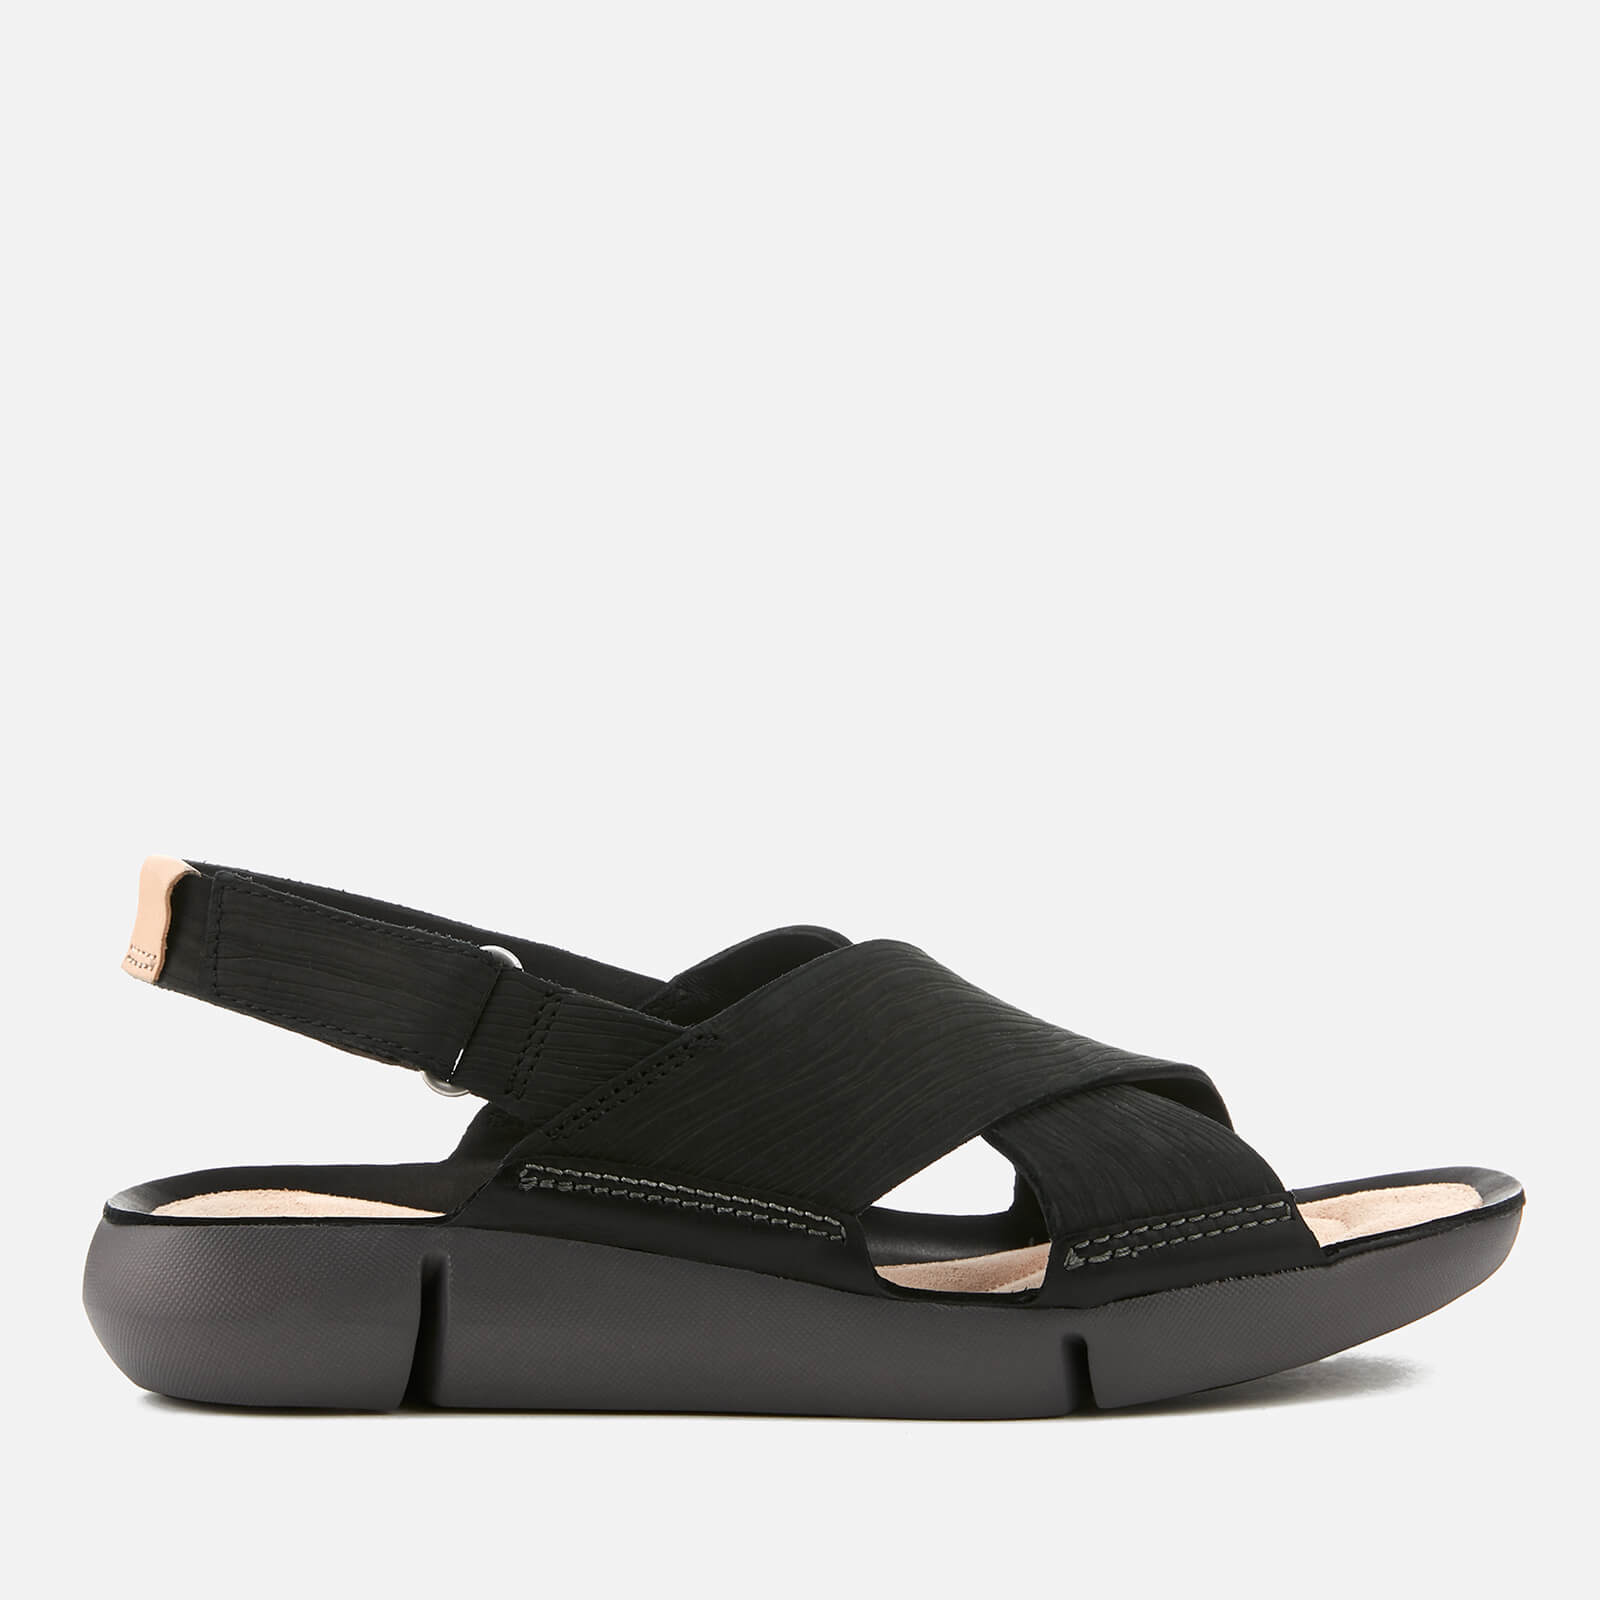 806f9c779f72 Clarks Women s Tri Chloe Nubuck Cross Strap Sandals - Black Womens  Accessories